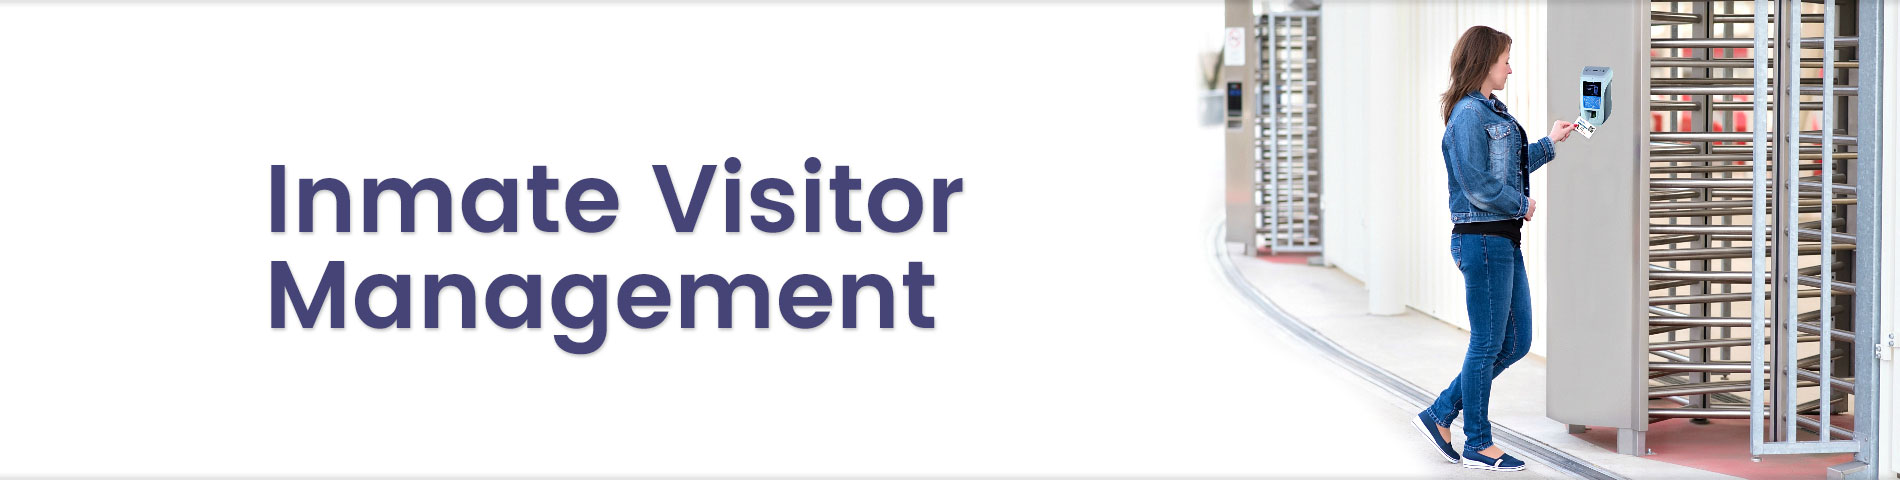 Inmate Visitor Management